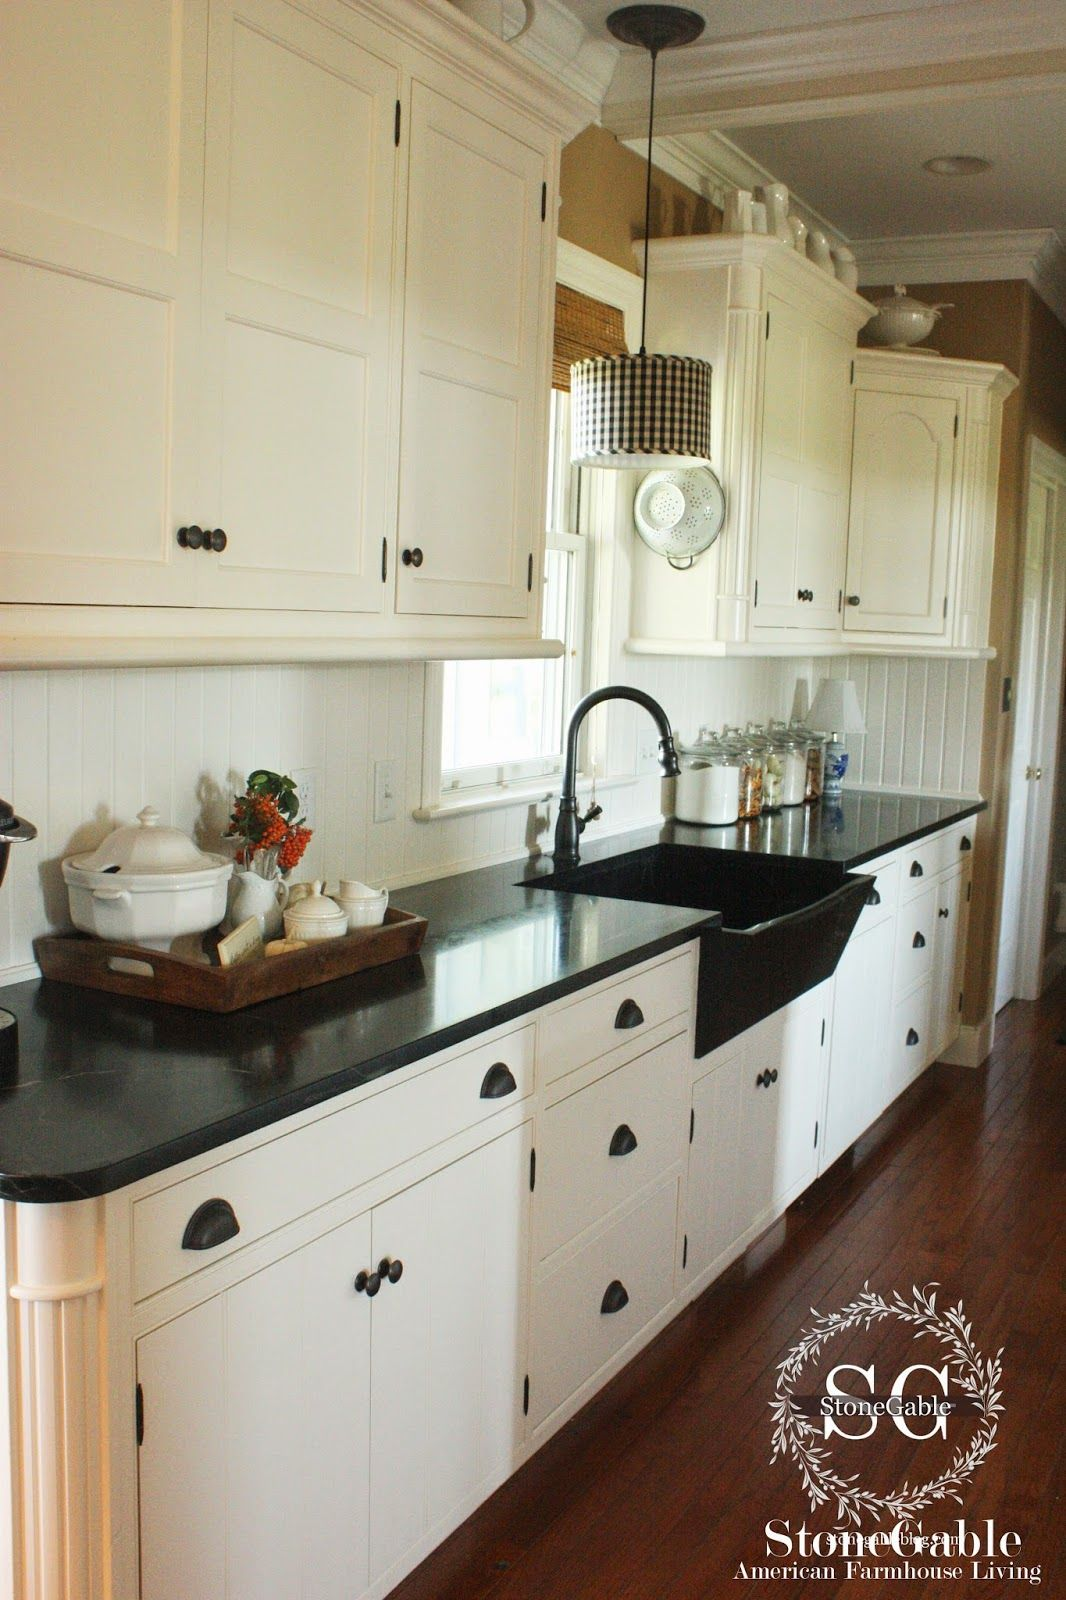 10 ELEMENTS OF A FARMHOUSE KITCHEN Kitchen